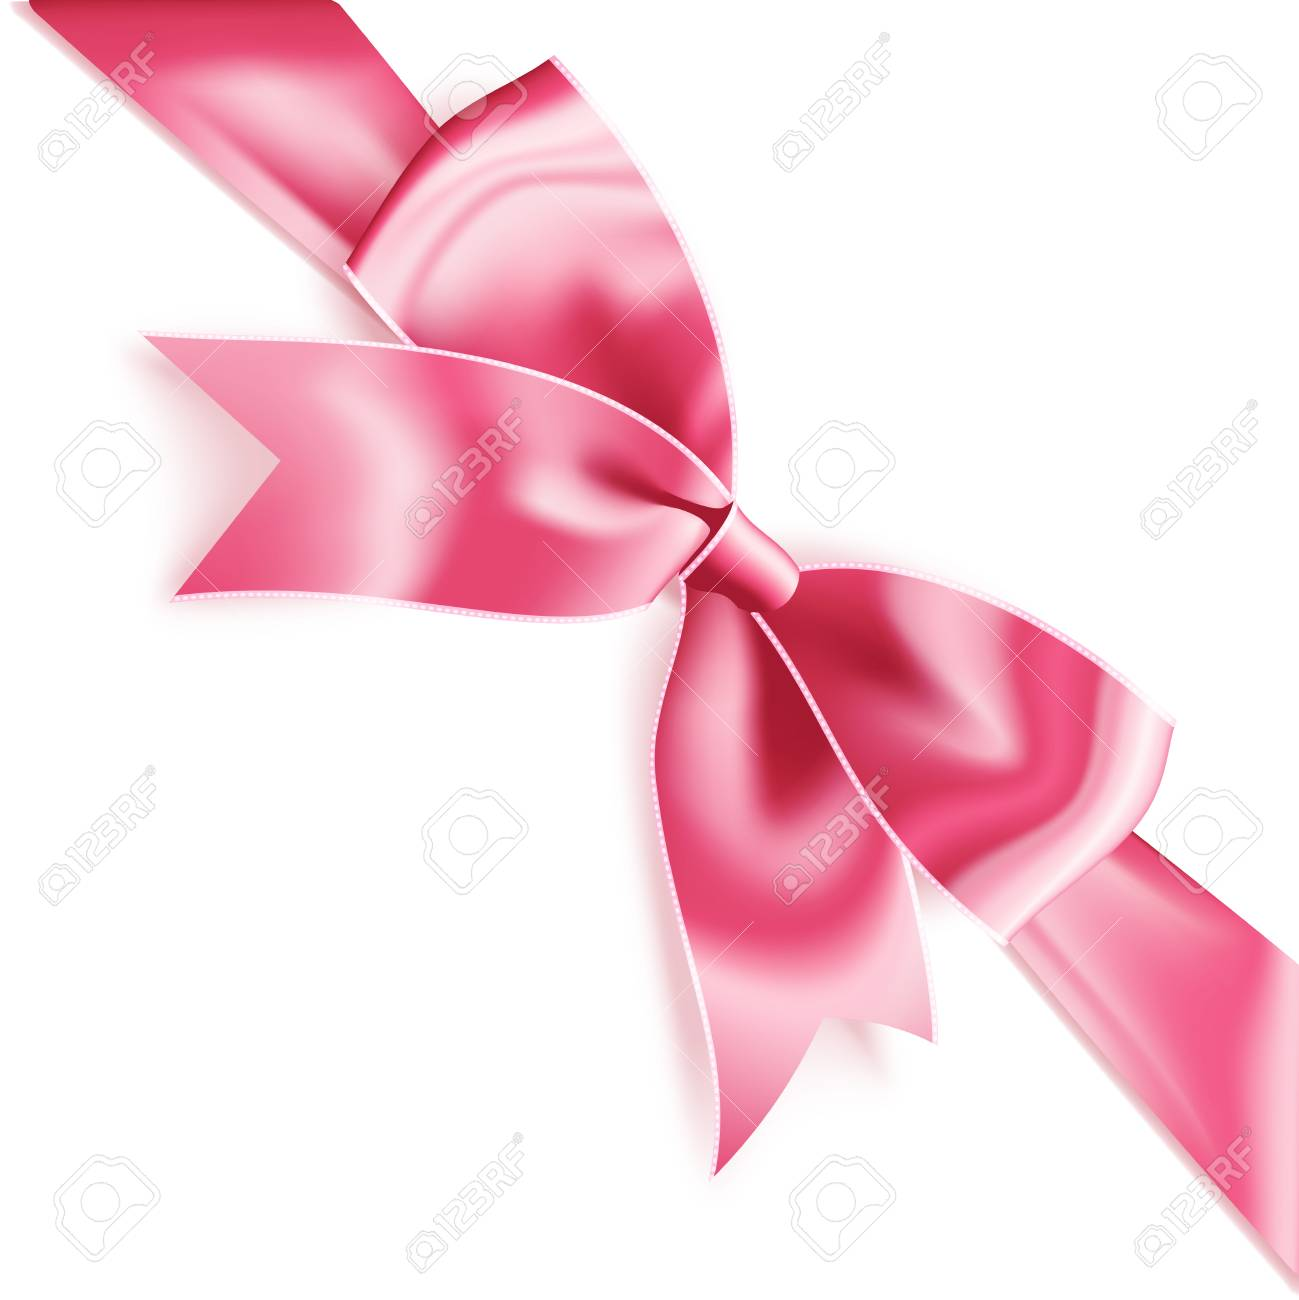 Realistic satin pink bow knot on ribbon. Vector illustration icon isolated  on white. Stock 542c2d8cc91